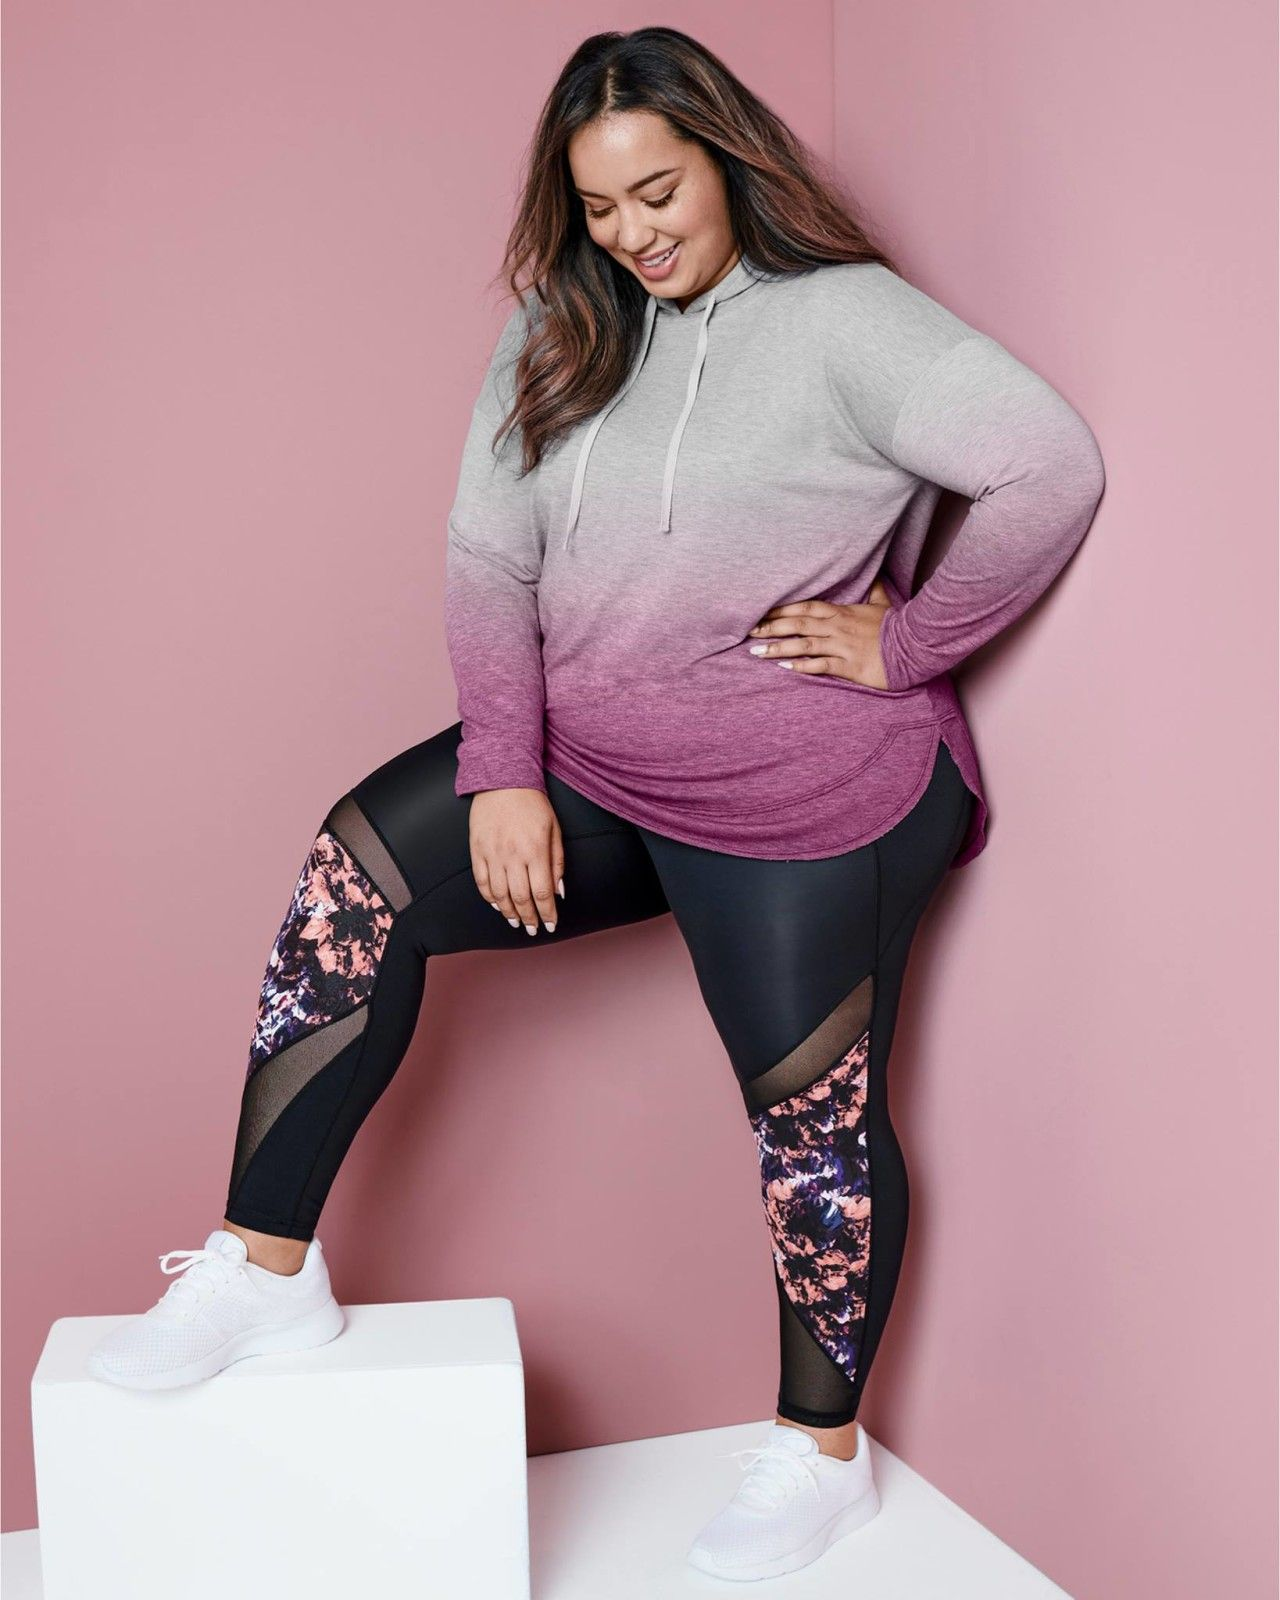 94dda2ce1ef Looking for where you can find some of the best in plus size active wear